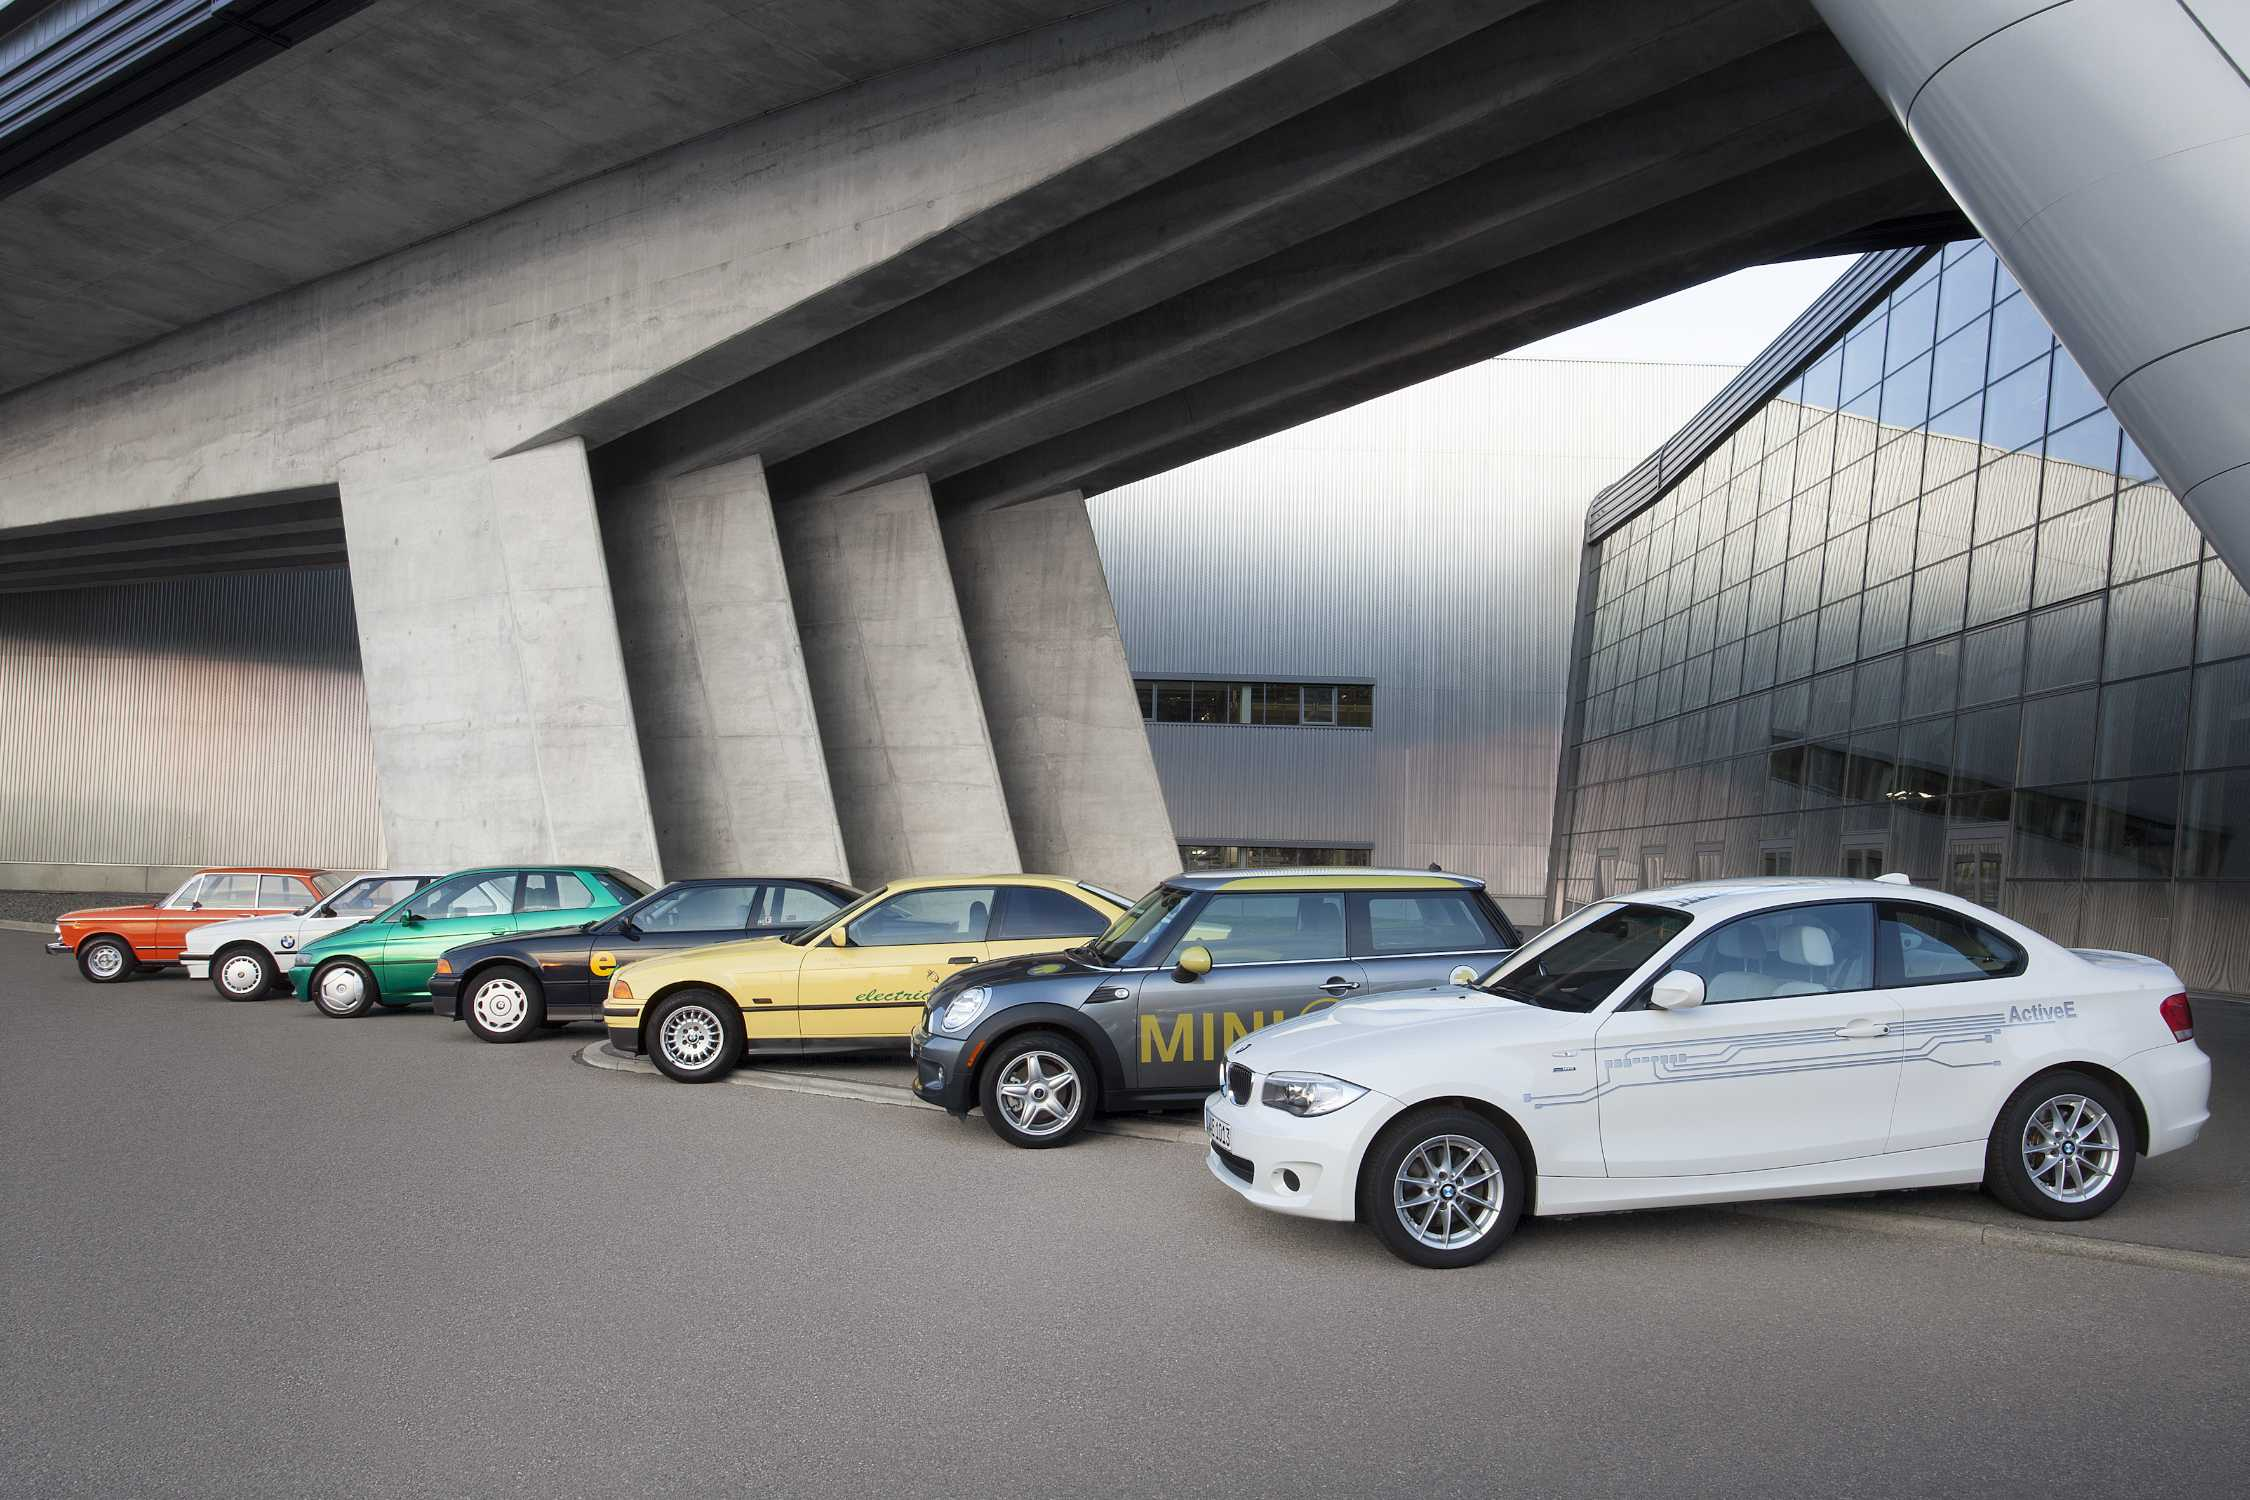 40 Years Of Electric Mobility At The Bmw Group From 1602 To I3